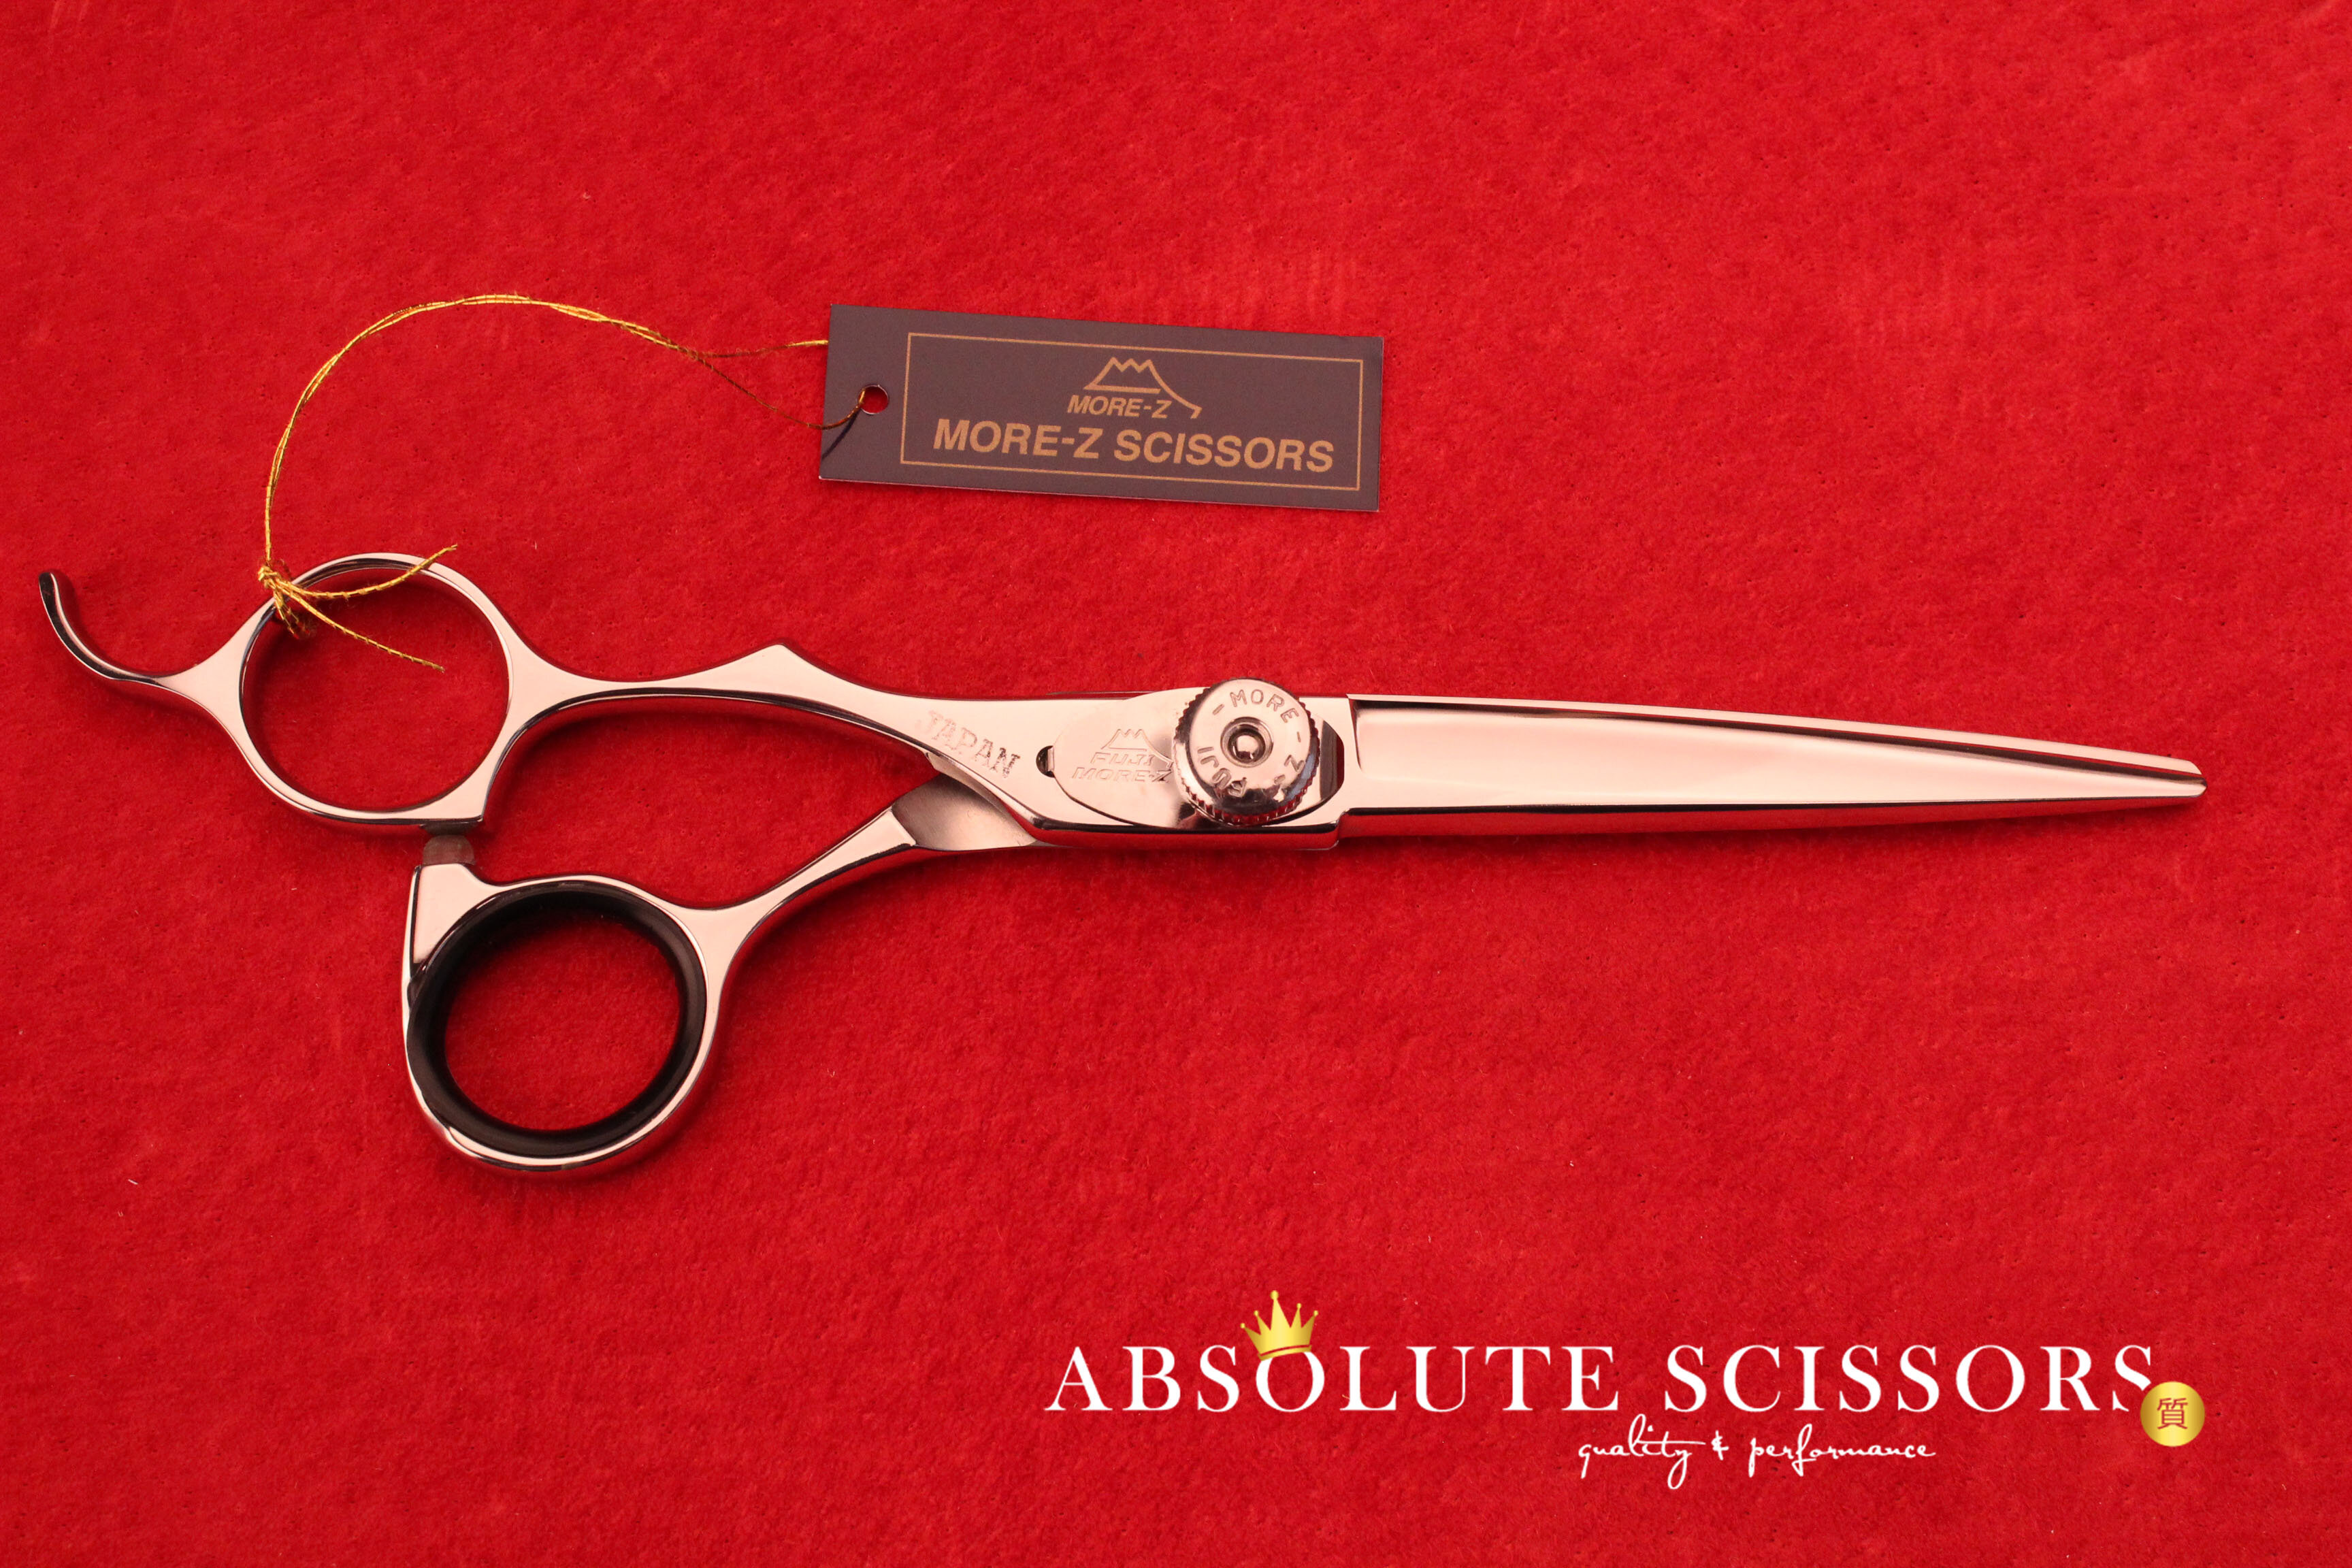 SF60 3588 Fuji Hair scissors left handed size 6 inches